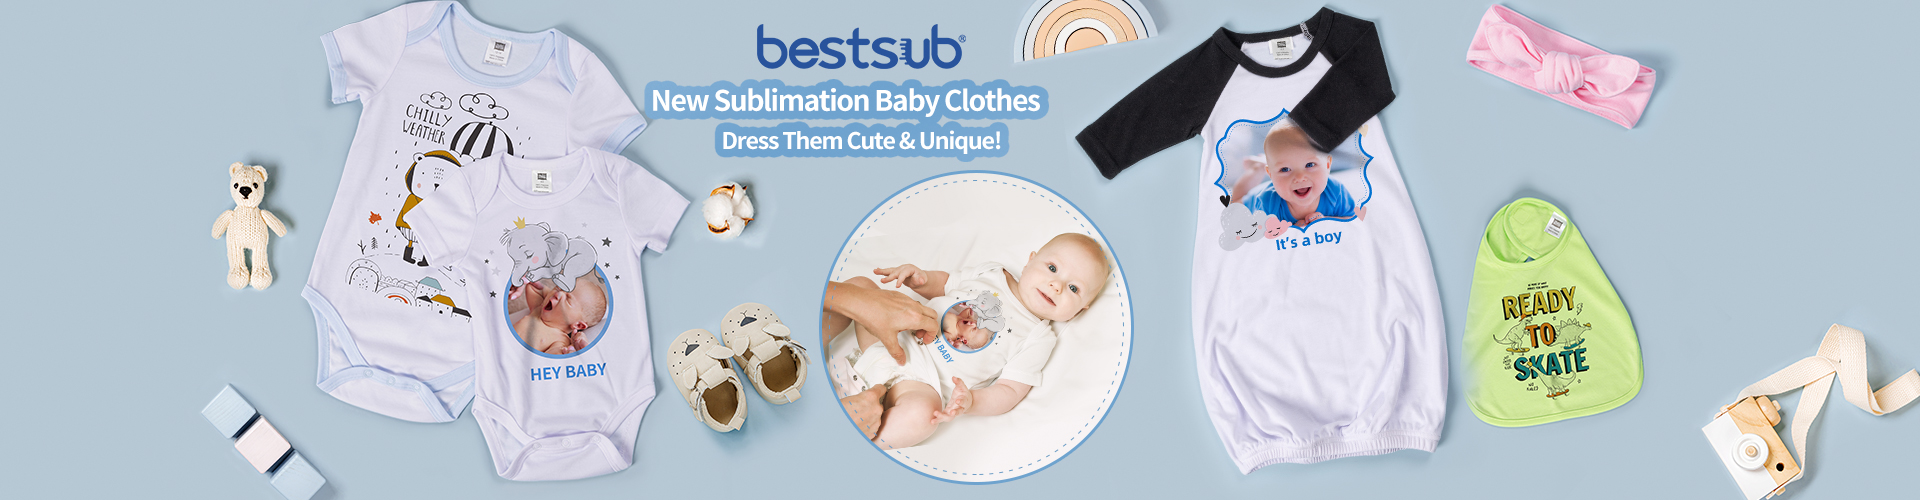 2021-04-23_New_Sublimation_Baby_Clothes_new_web